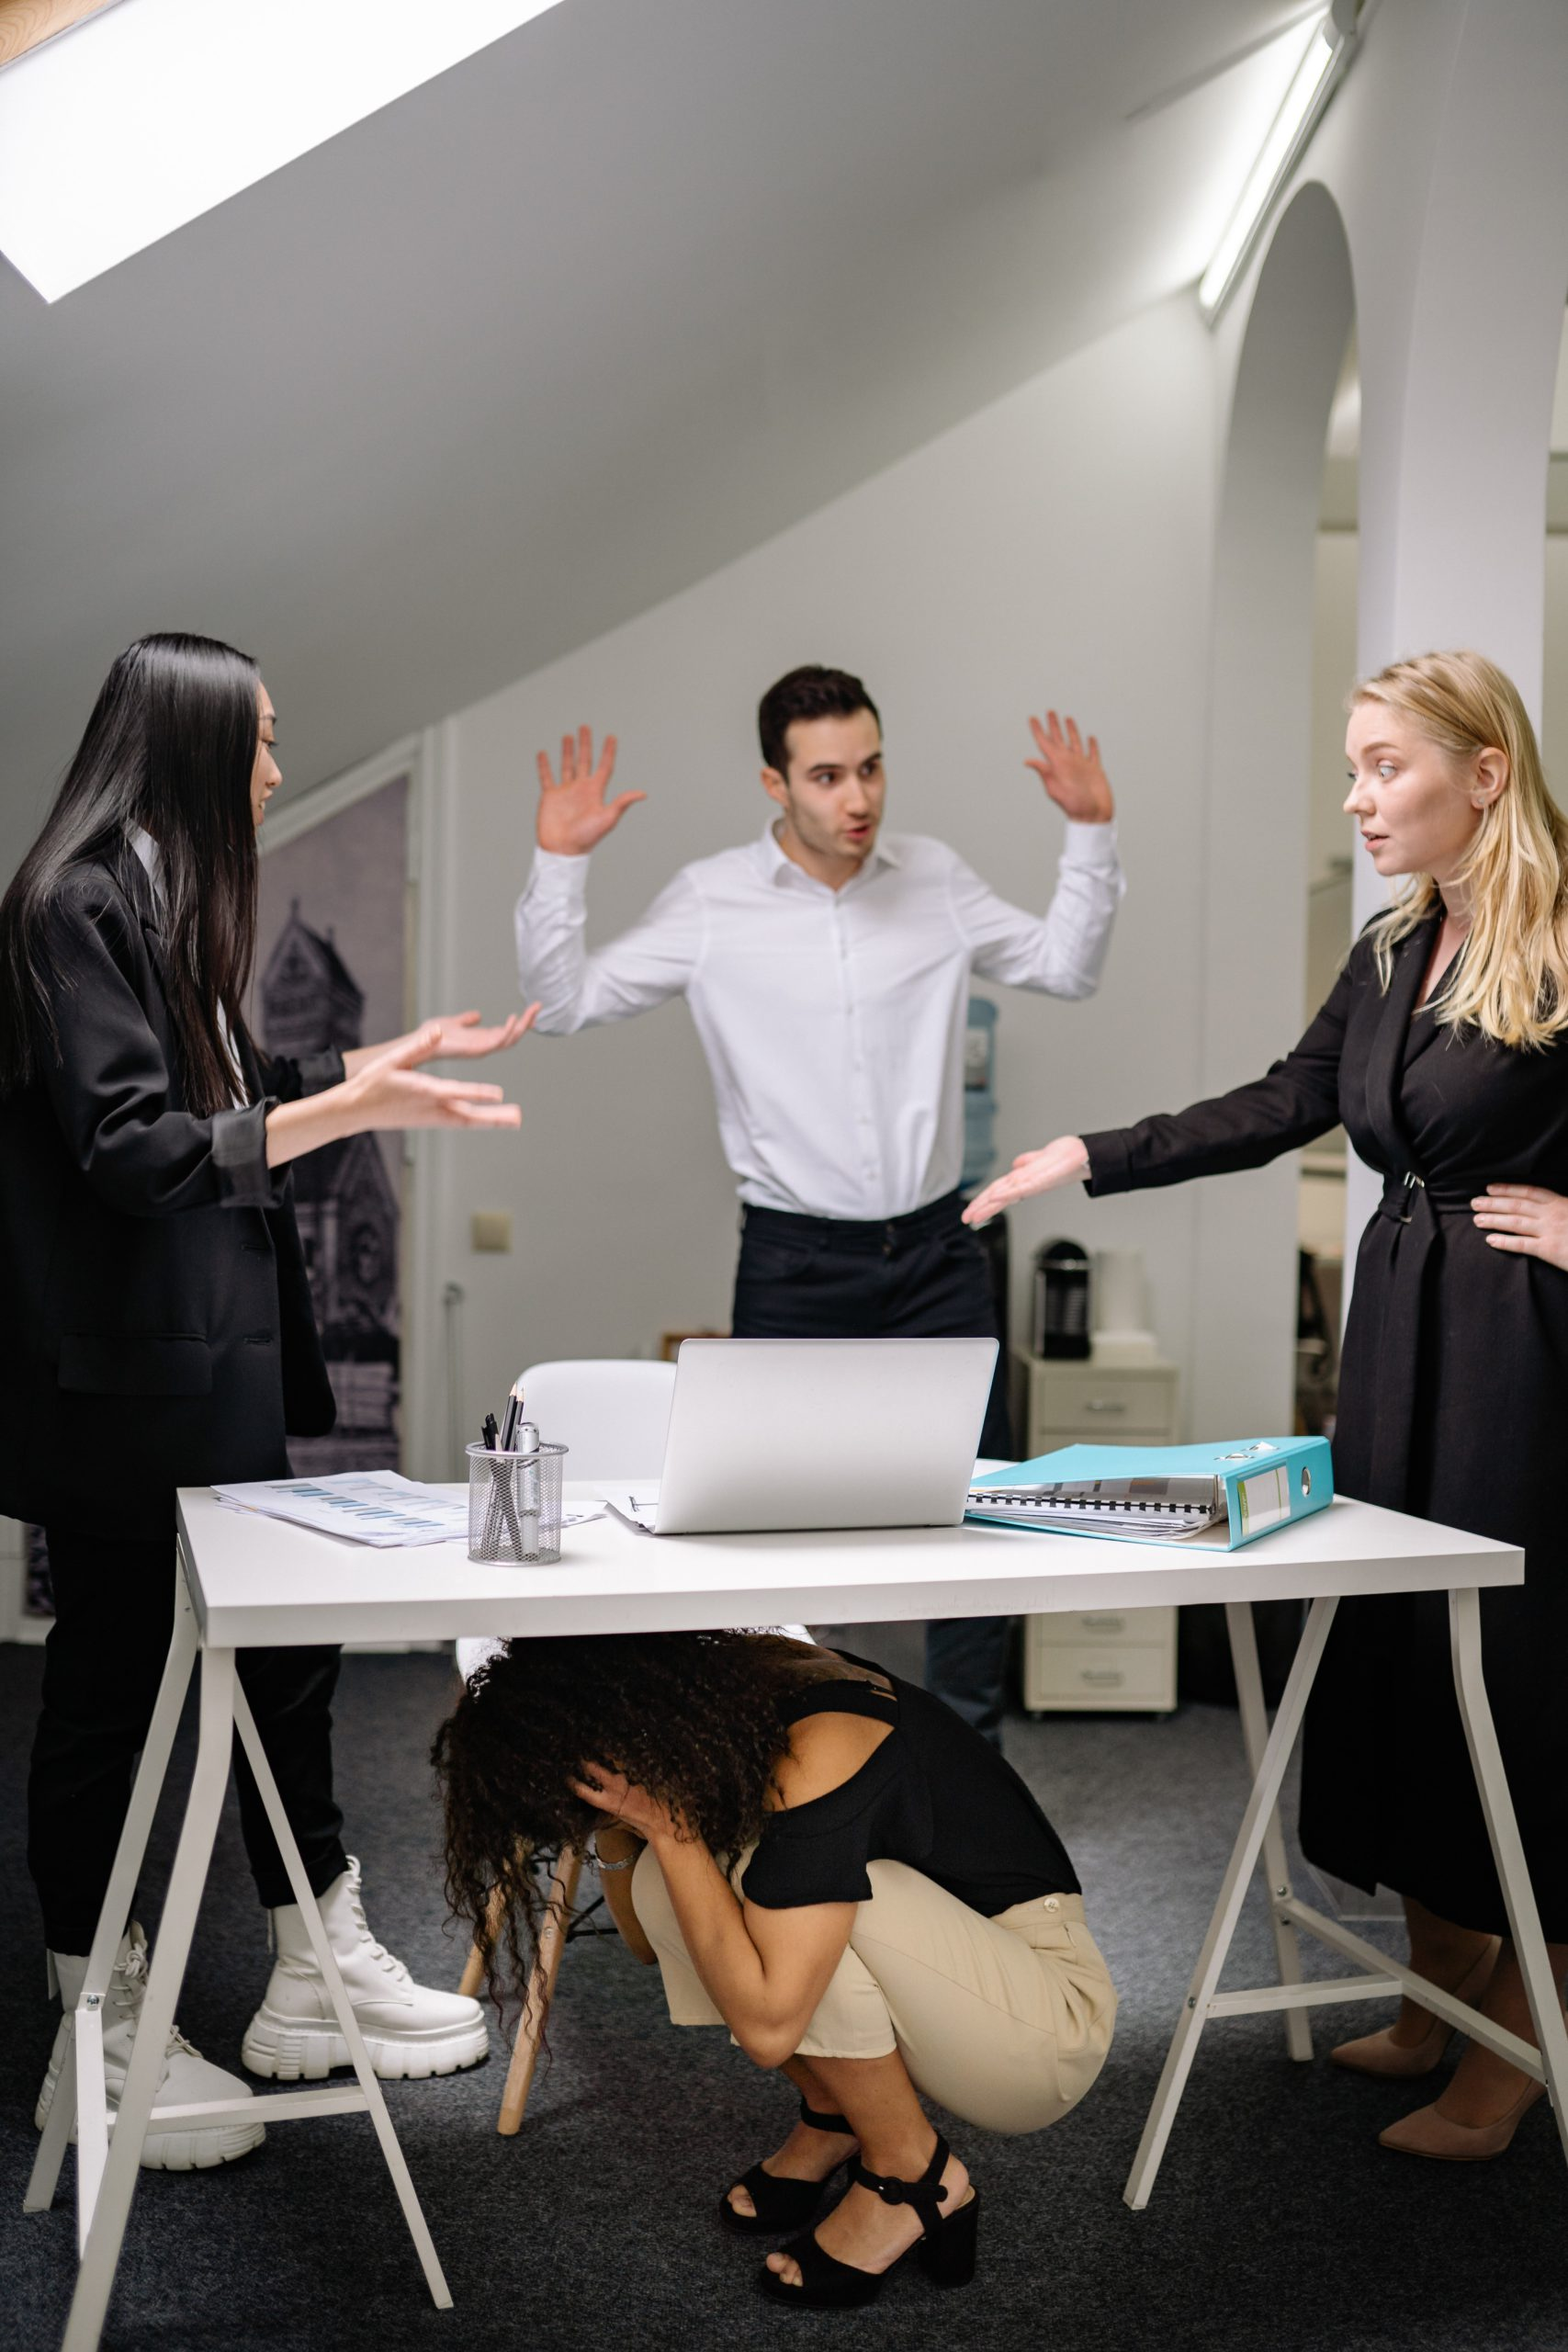 HR Professionals on Workplace Bullying